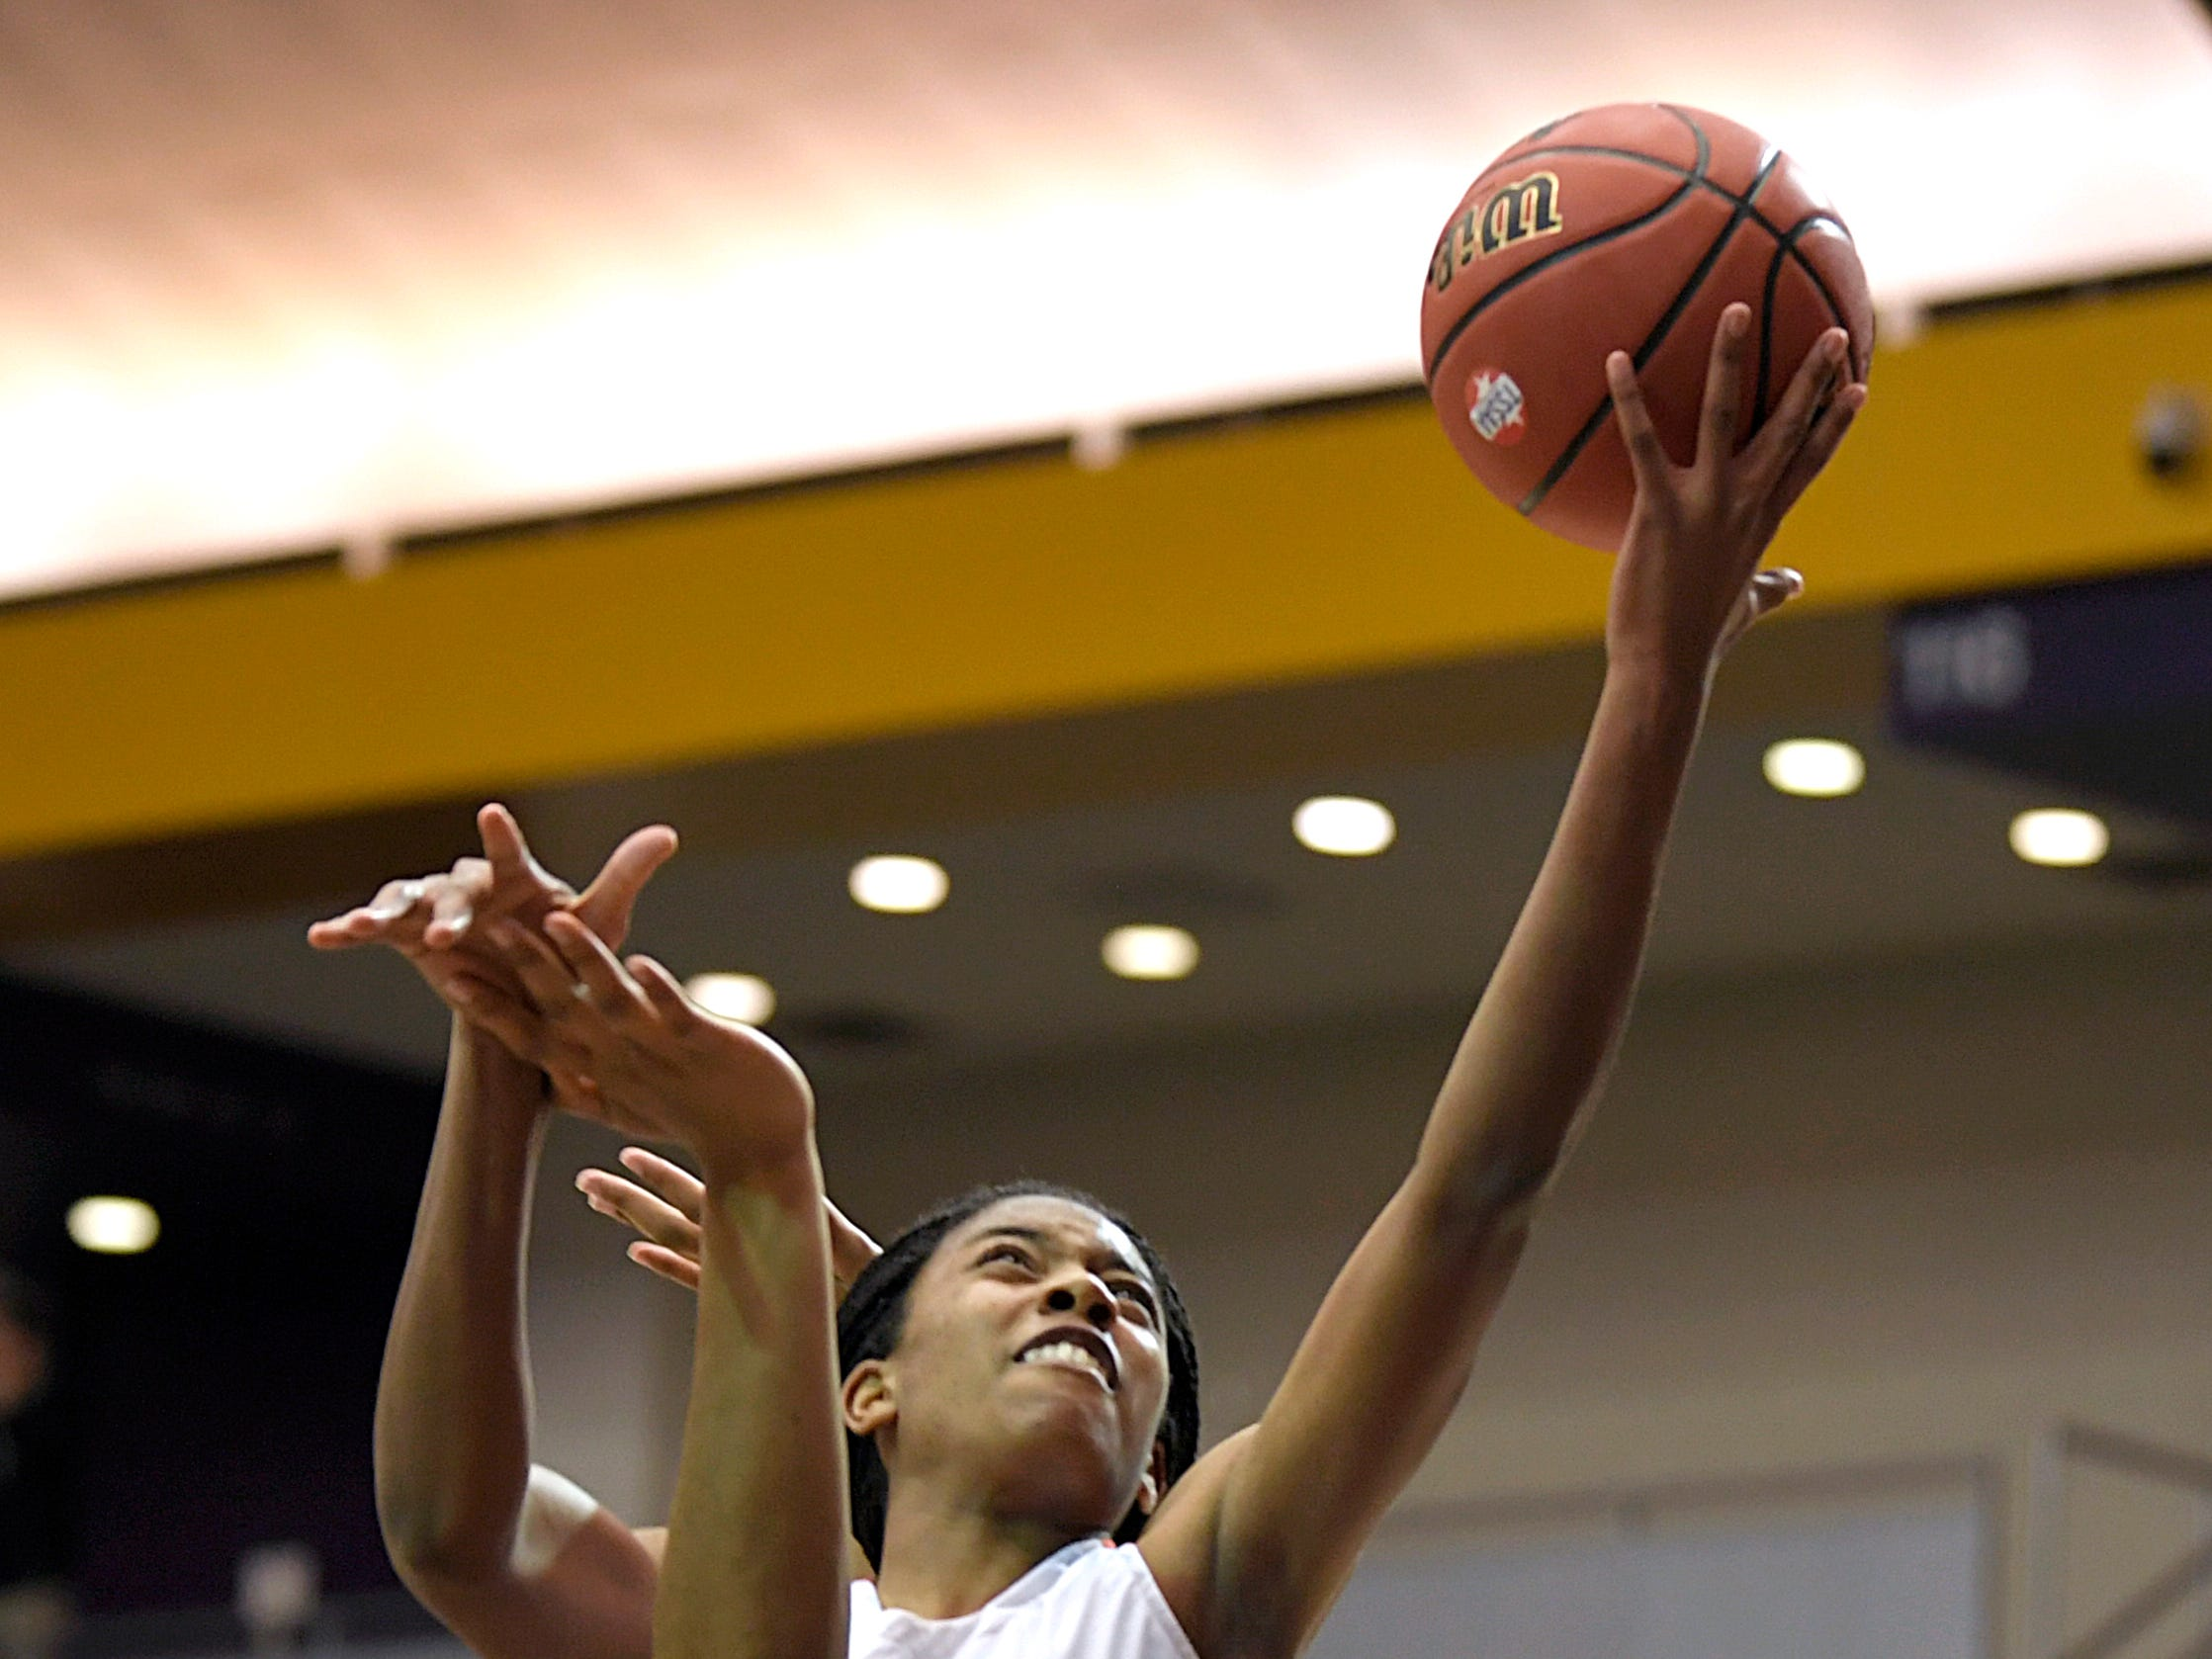 Ensworth's Kaiya Wynn (21) shoots against a Hutchison player during the TSSAA Division II Class AA semifinals at Lipscomb University's Allen Arena in Nashville on Thursday, Feb. 28, 2019.